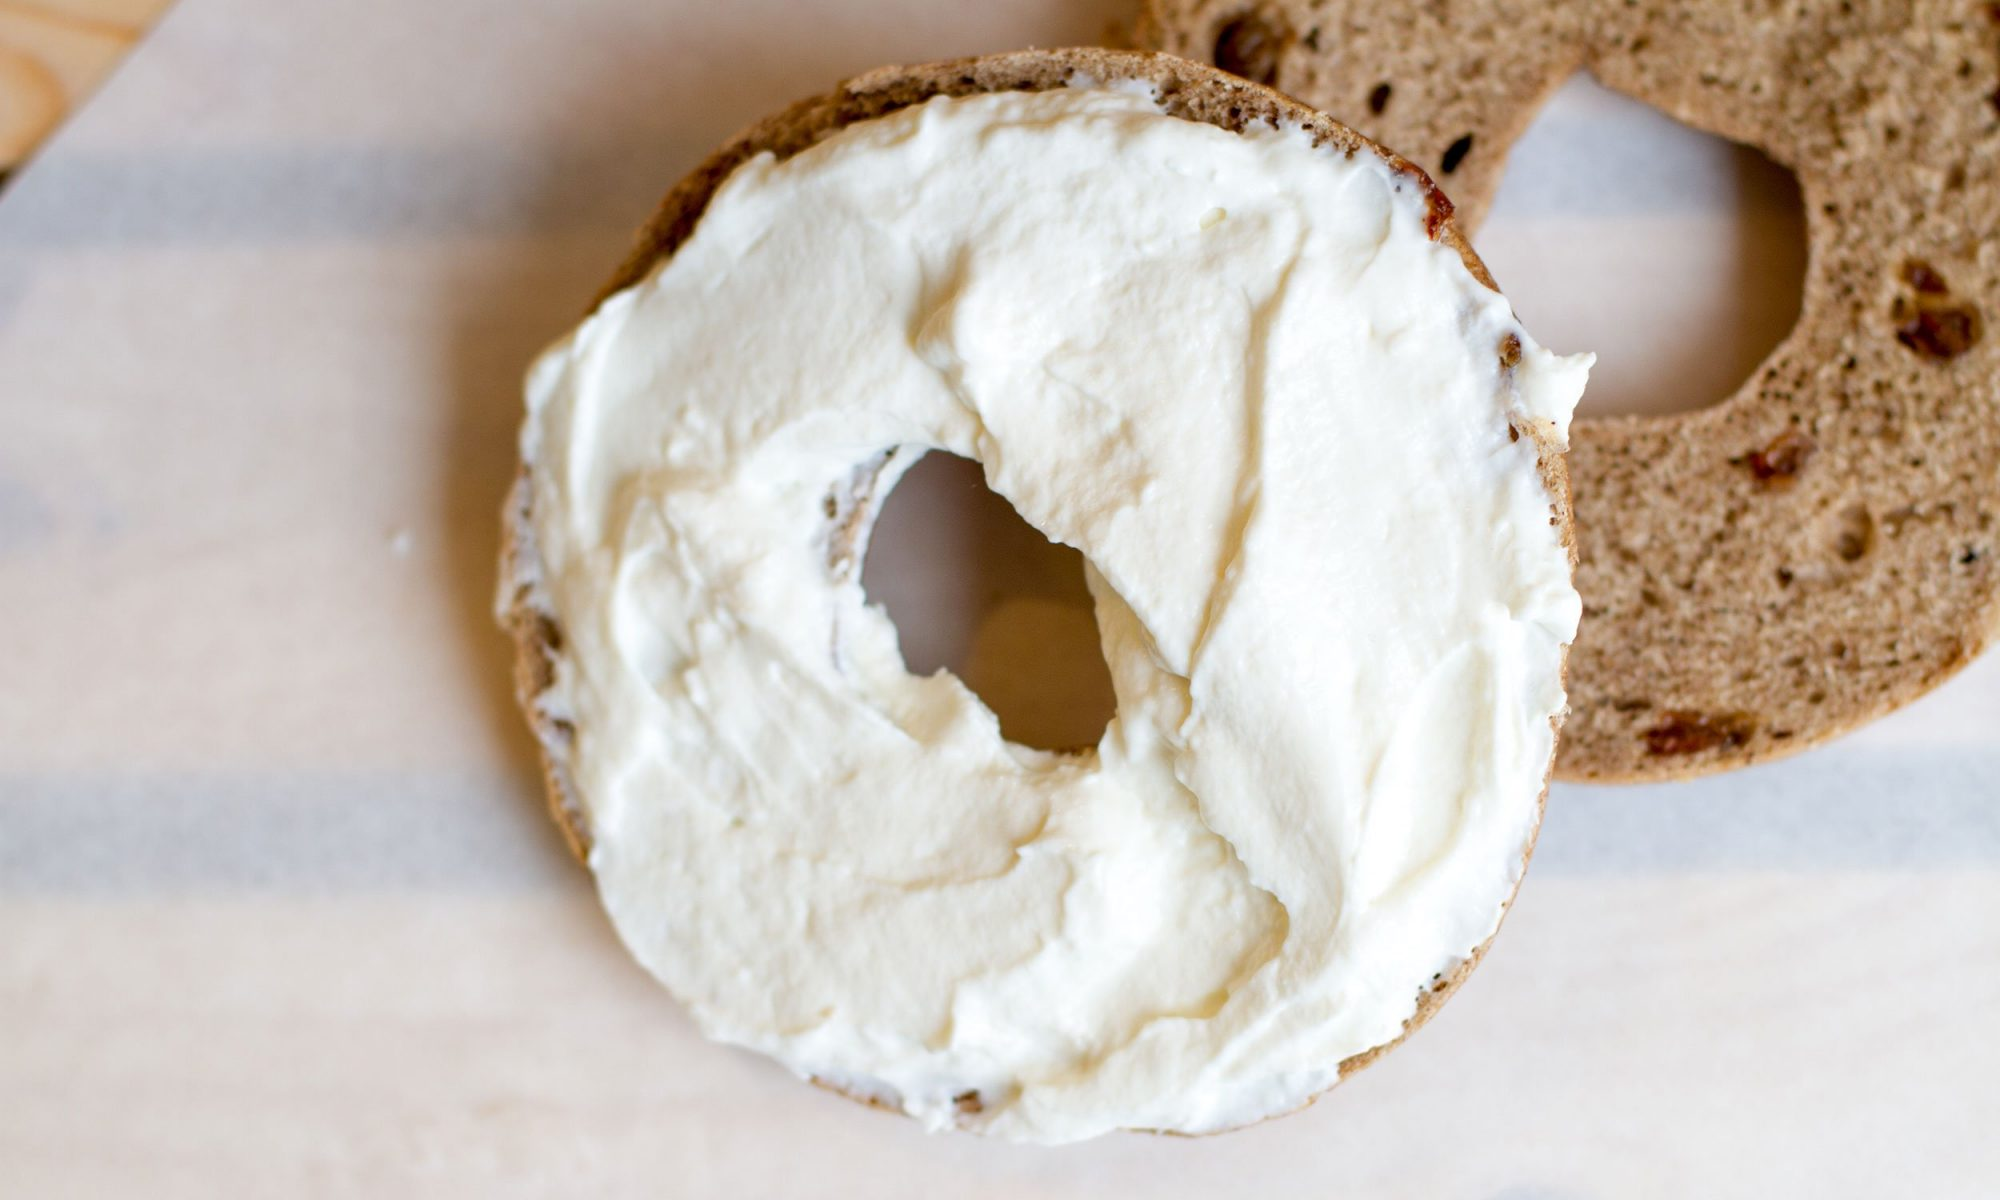 The Best Cream Cheese Substitutes for Every Situation